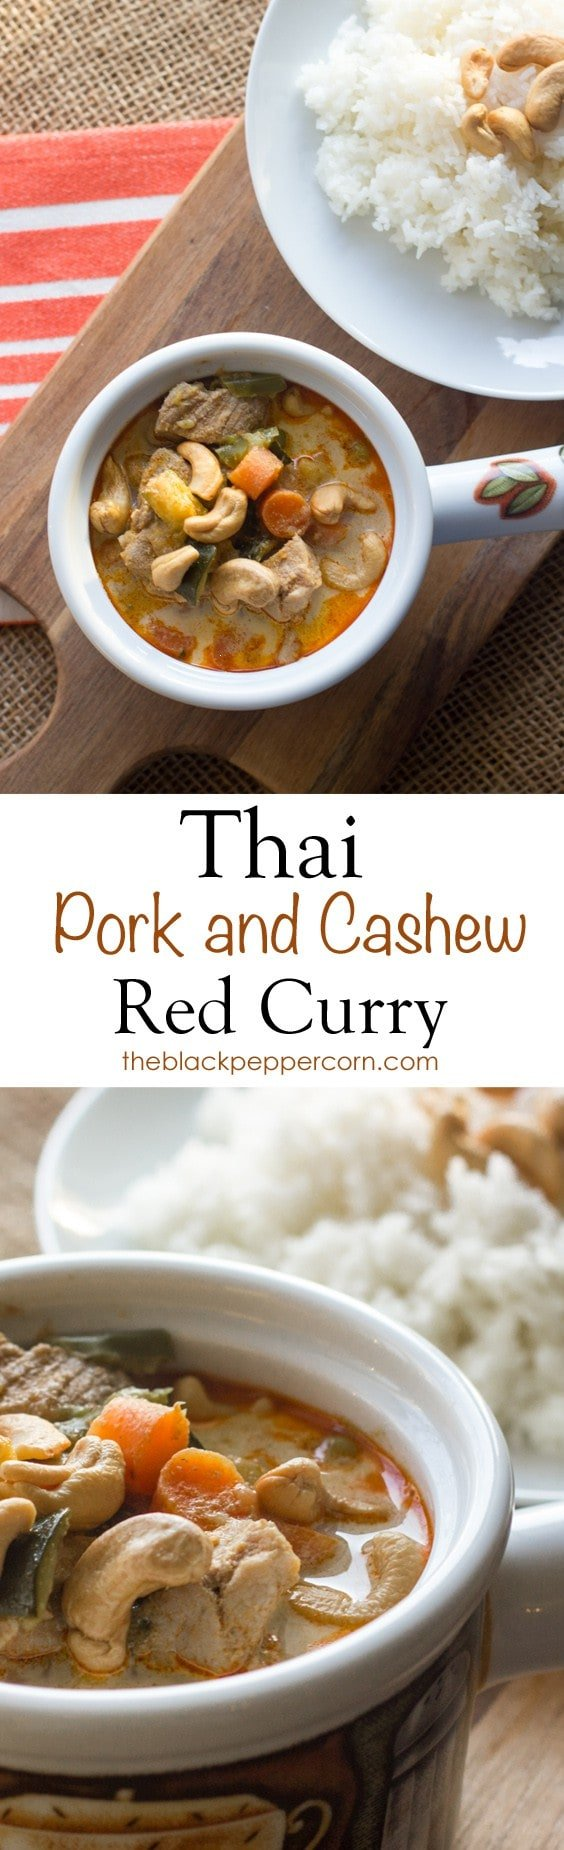 Thai Pork and Cashew Red Curry